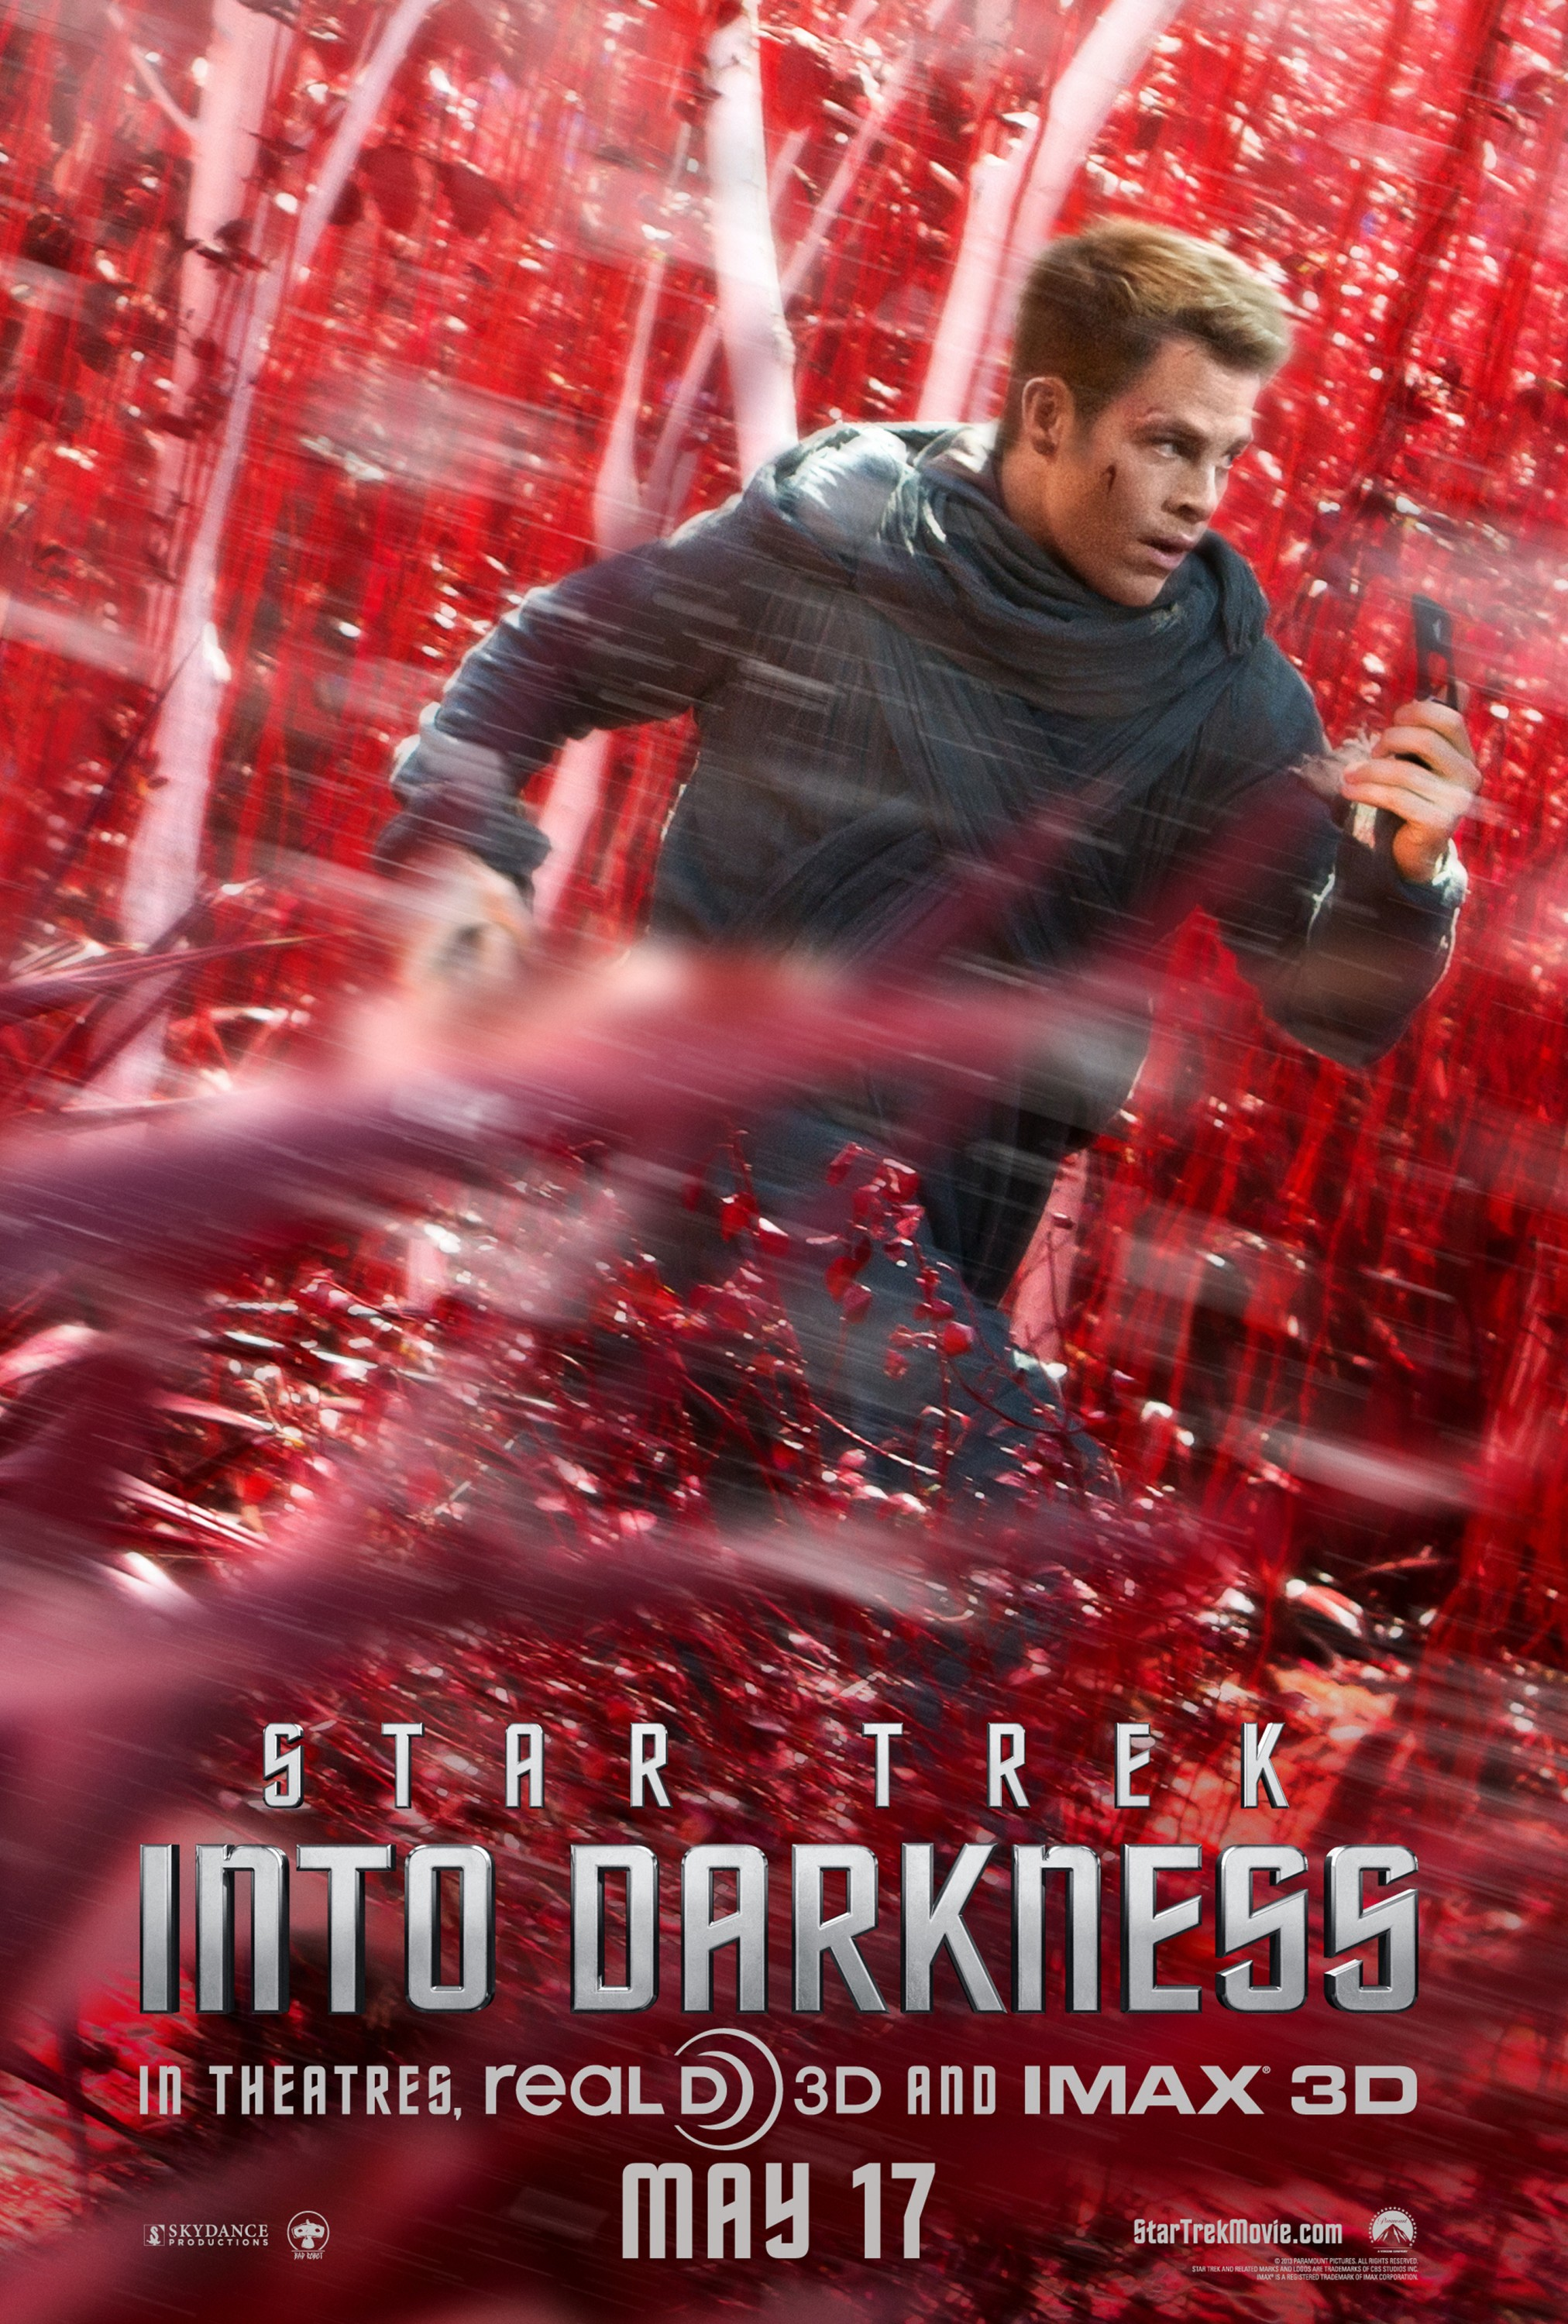 Star Trek Into Darkness - Poster - 008